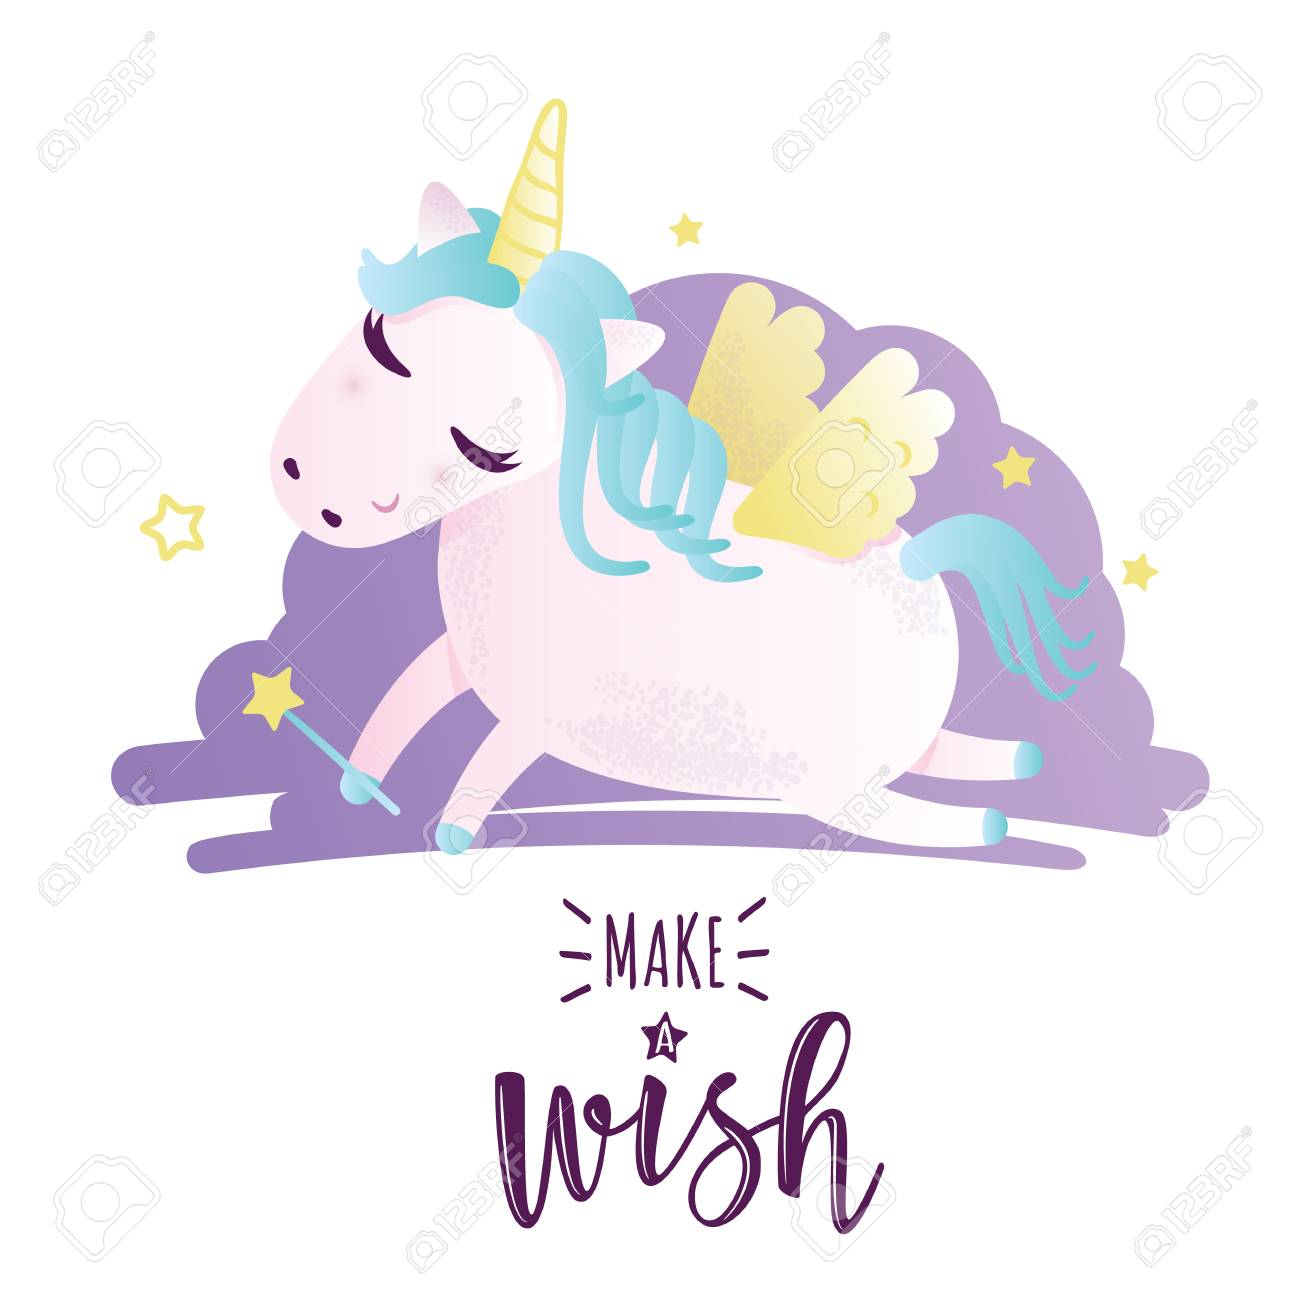 Vector illustration of a cute unicorn greeting card with make vector illustration of a cute unicorn greeting card with m4hsunfo